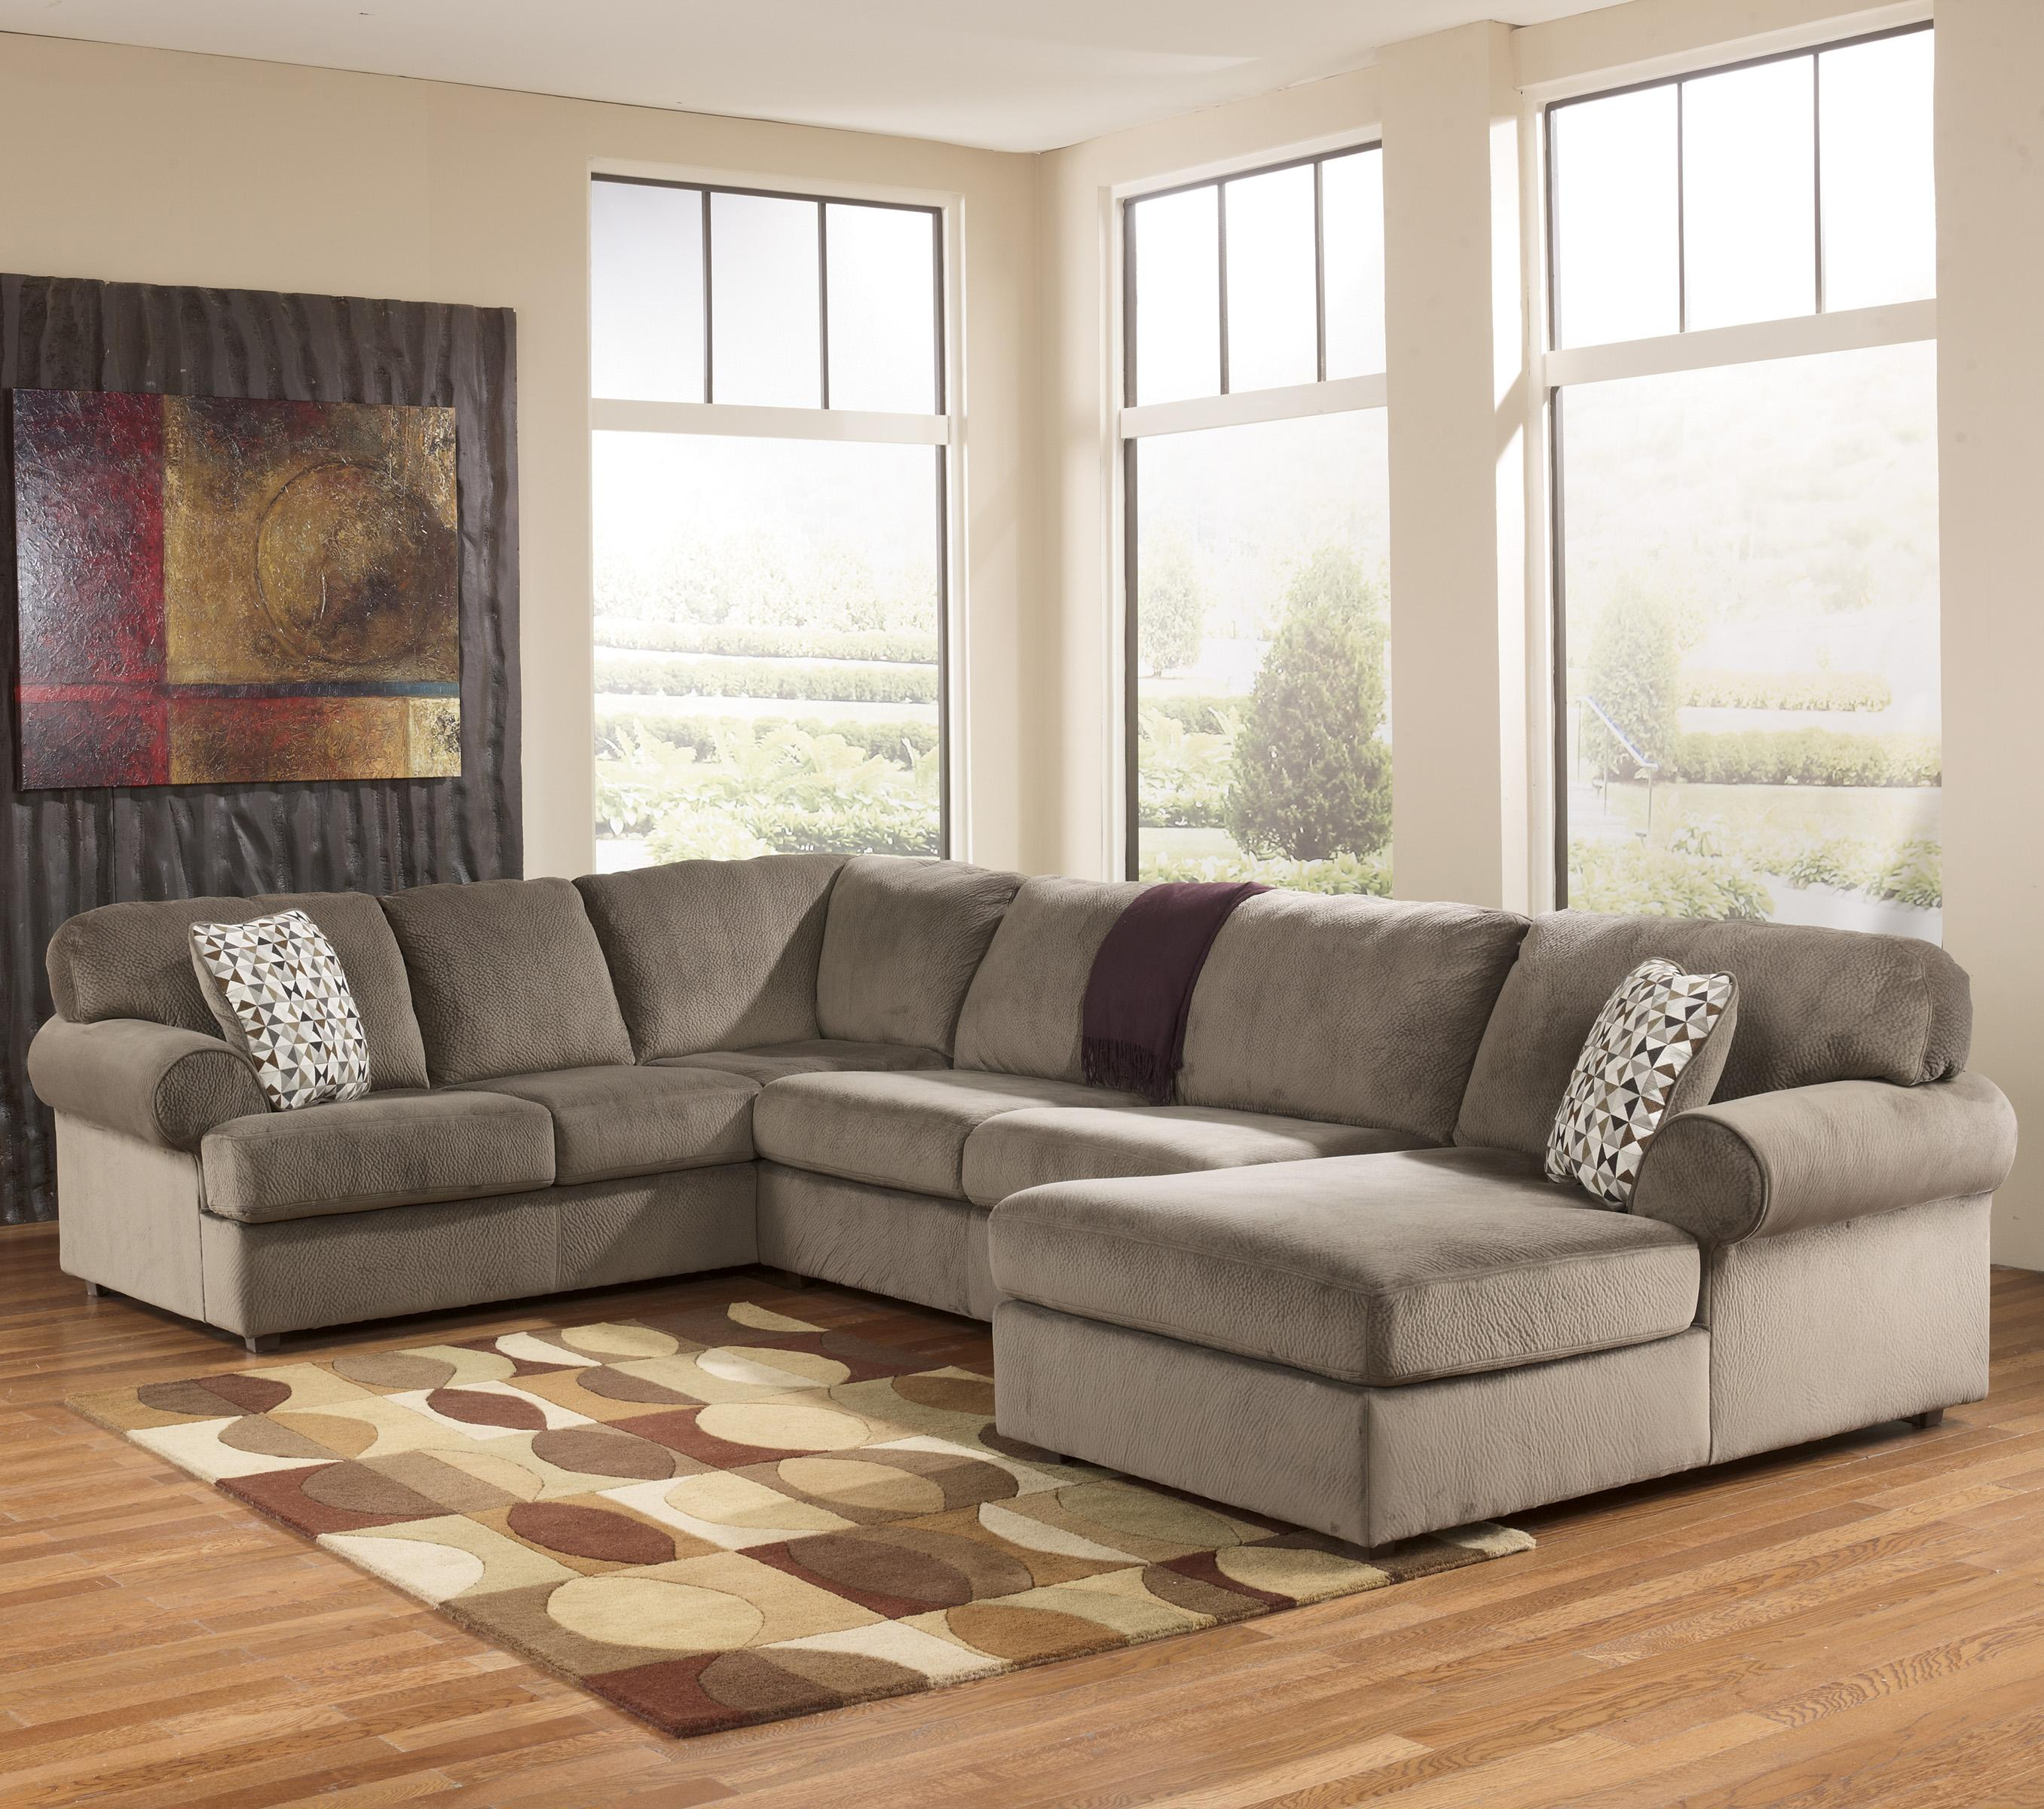 sofa ashley barcelona 2 cuerpos good sofas uk casual sectional with right chaise by signature